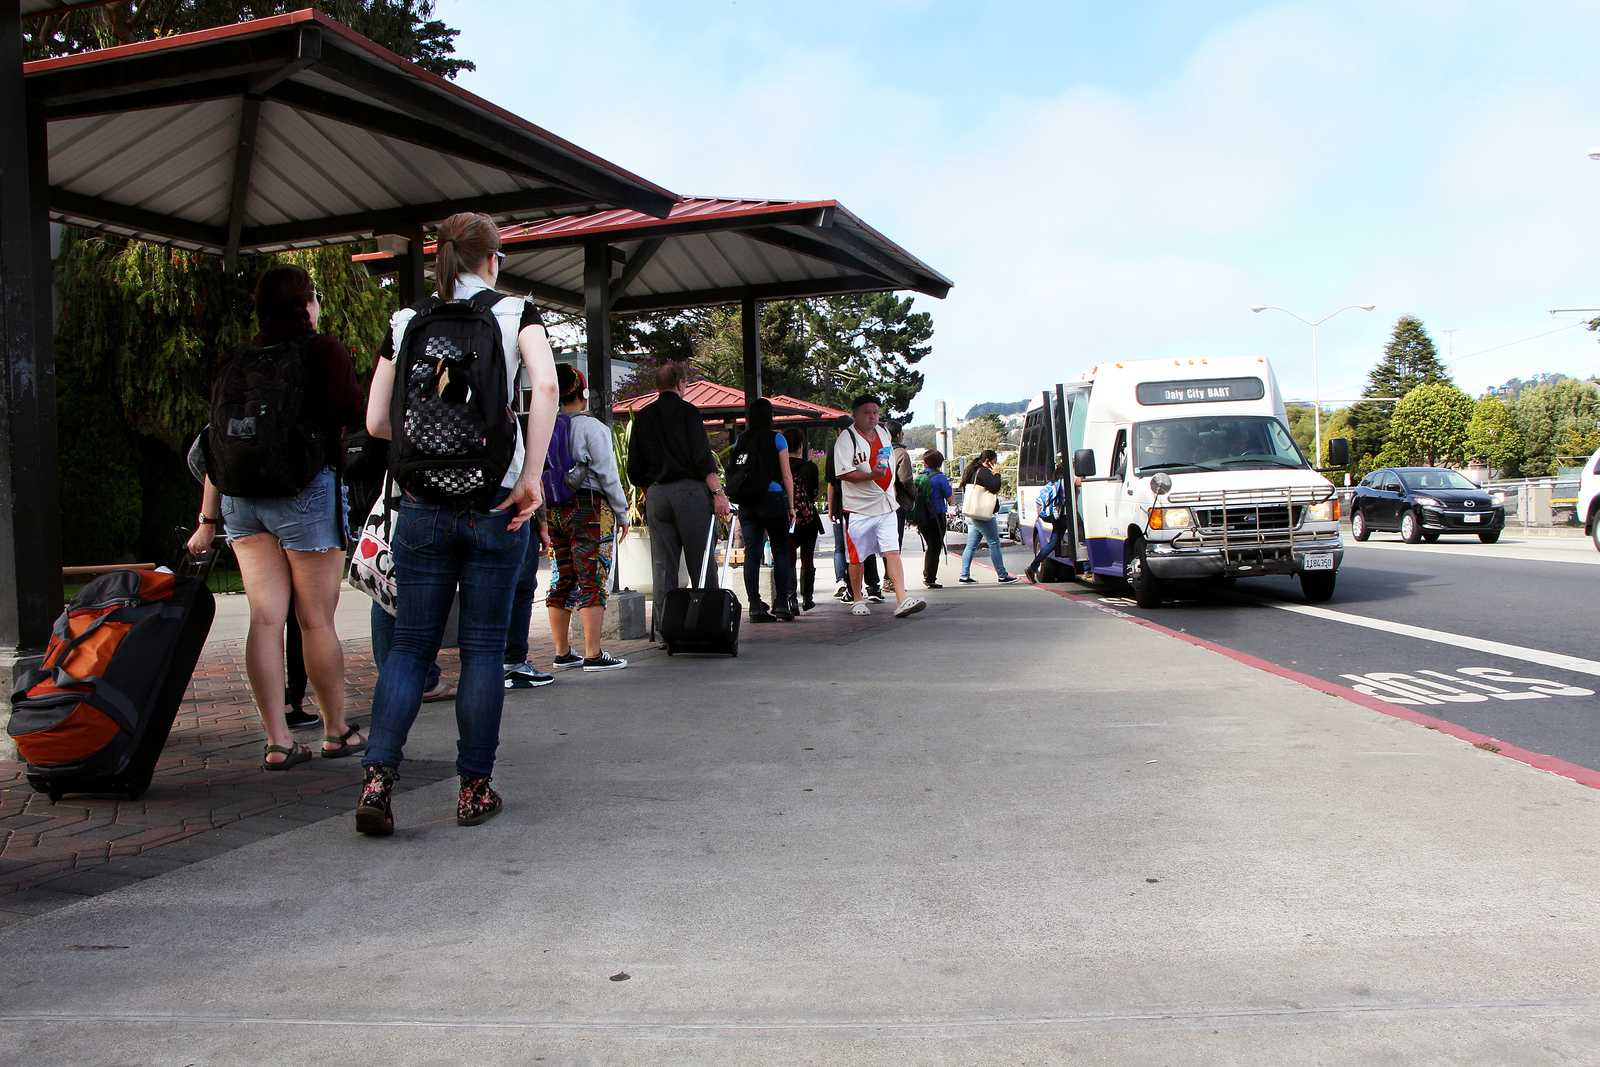 SF State students line up to take the free shuttle to the Daly City BART station on Thursday, August 29, 2013. The San Francisco Bay Bridge closure this week is creating traffic problems SF State students commuting to school across the Bay. Photo by Gavin McIntyre / Xpress